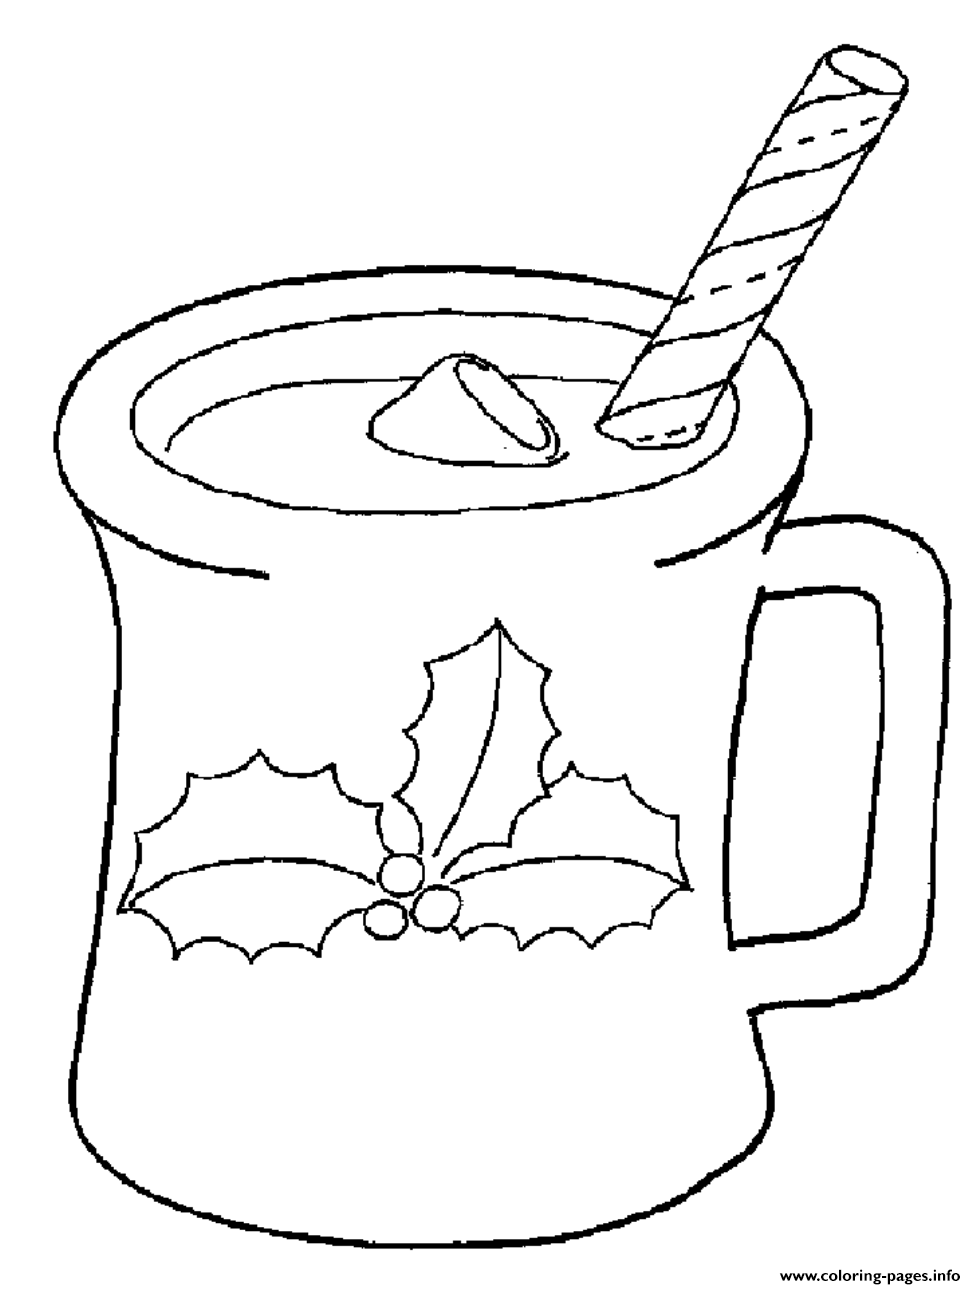 Printable S Christmas Drink7b04 coloring pages